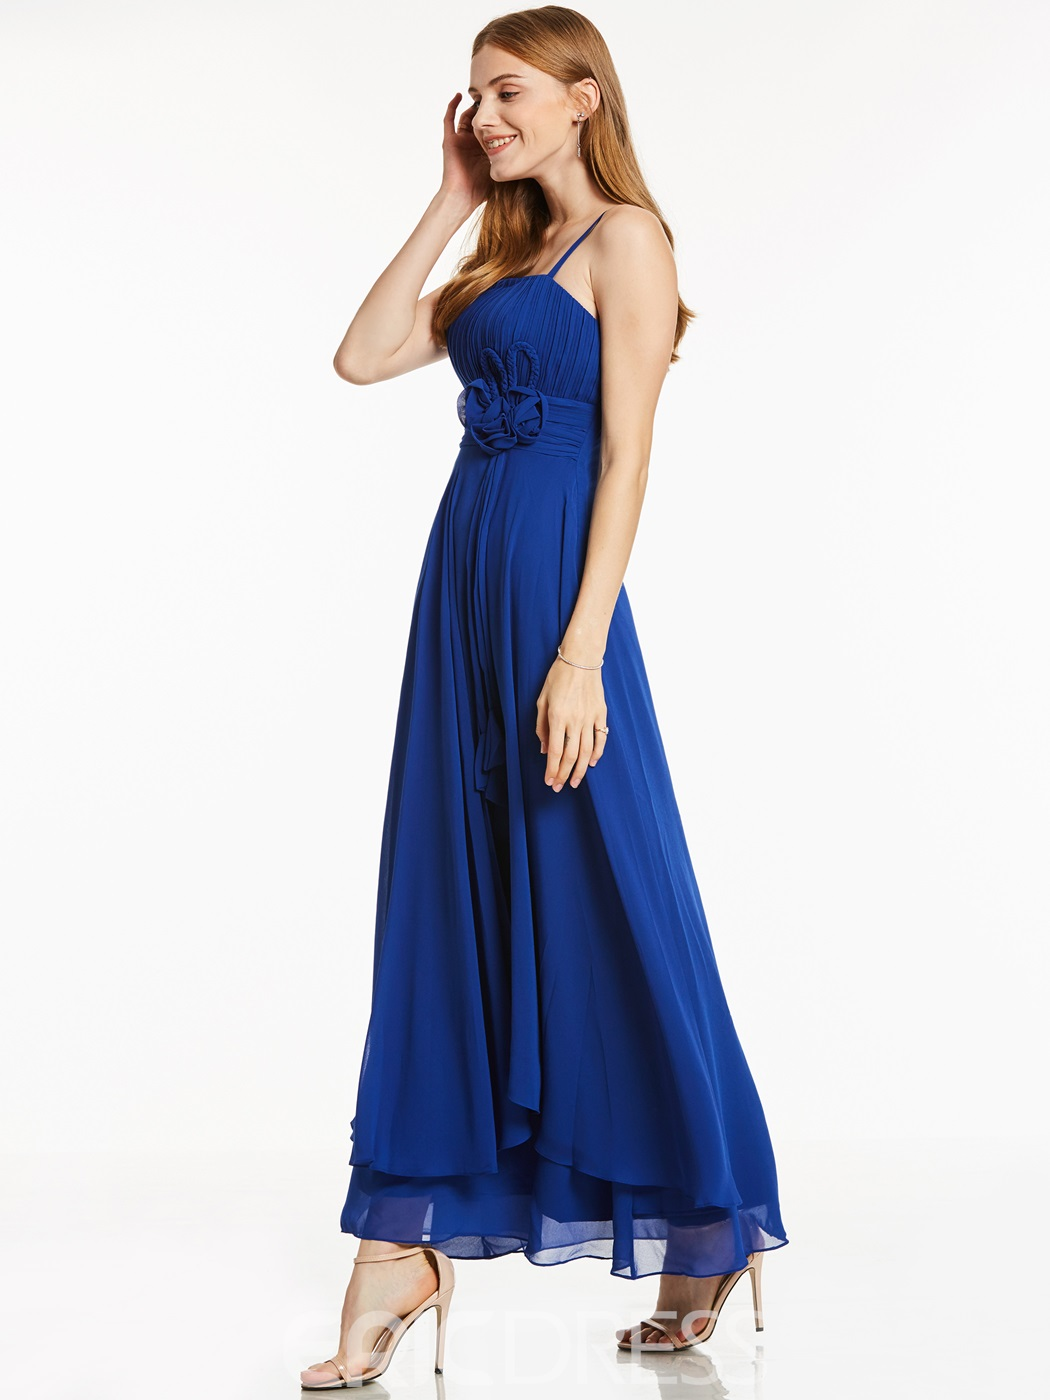 Ericdress A Line Spaghetti Straps Asymmetry Chiffon Ankle Length Prom Dress